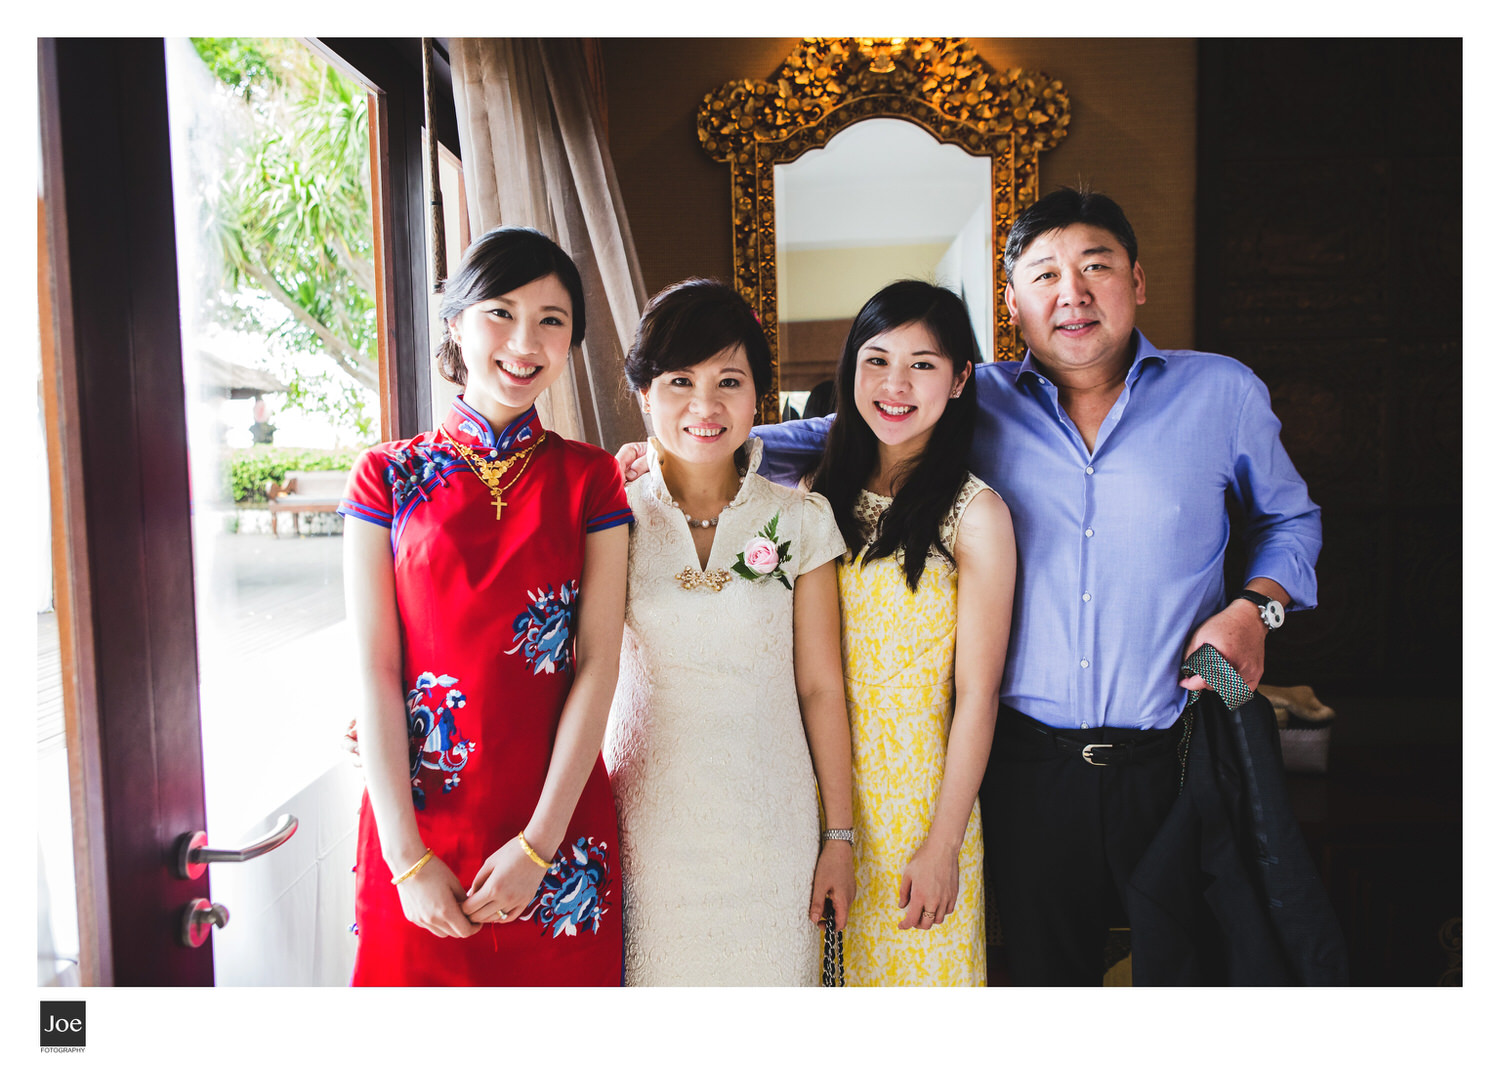 joe-fotography-bali-wedding-ayana-resort-janie-sean-18.jpg